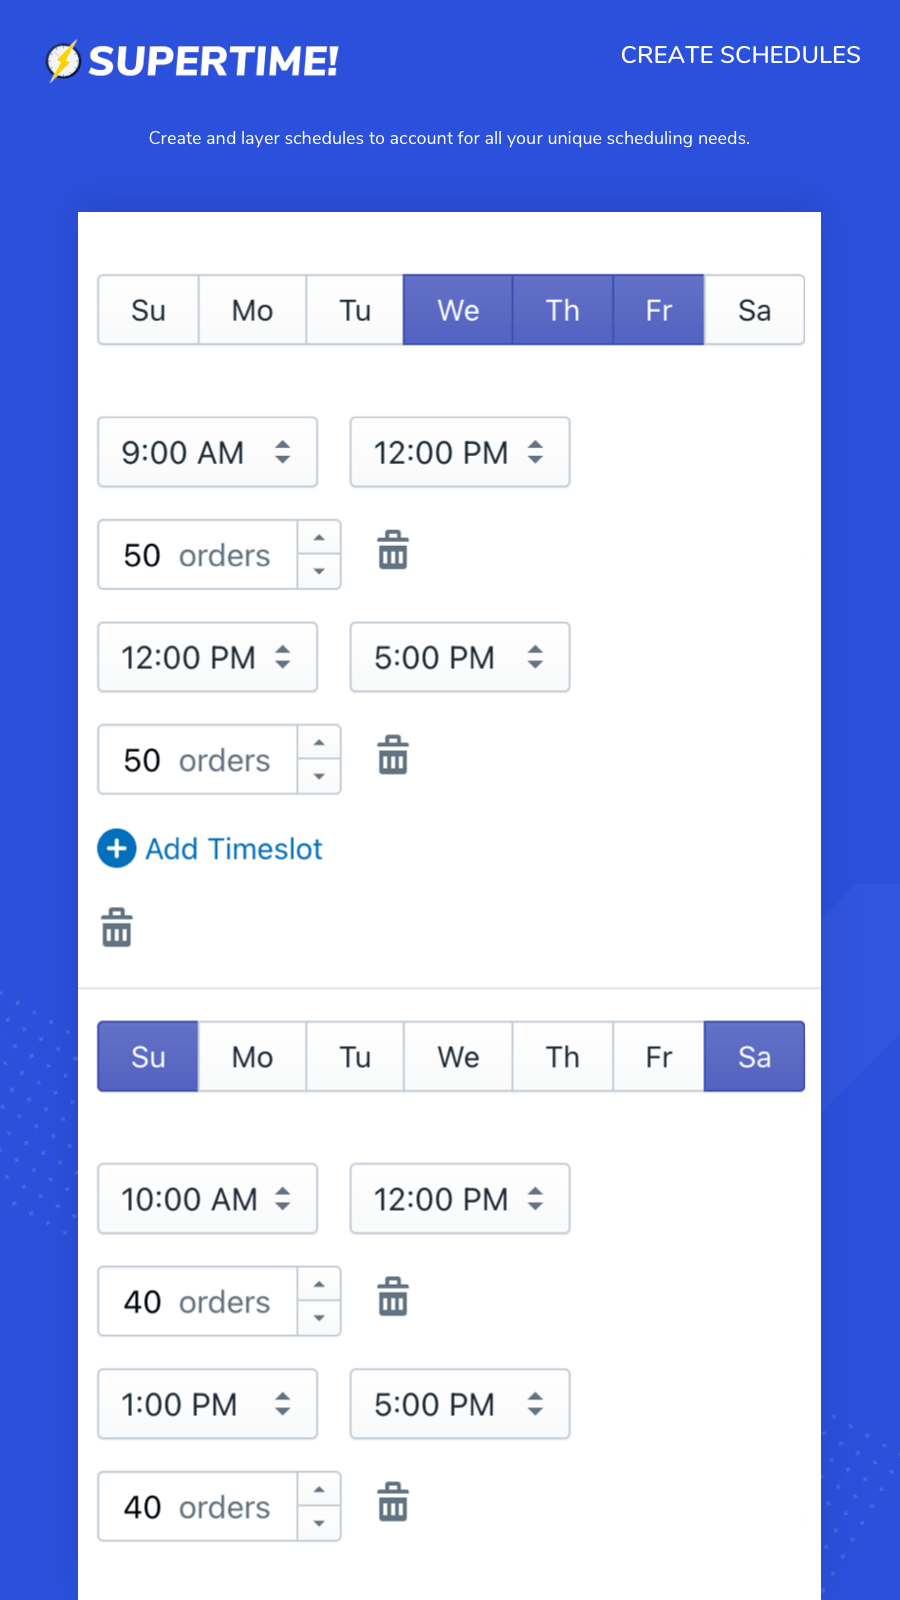 Create and layer schedules to account for all your unique schedu